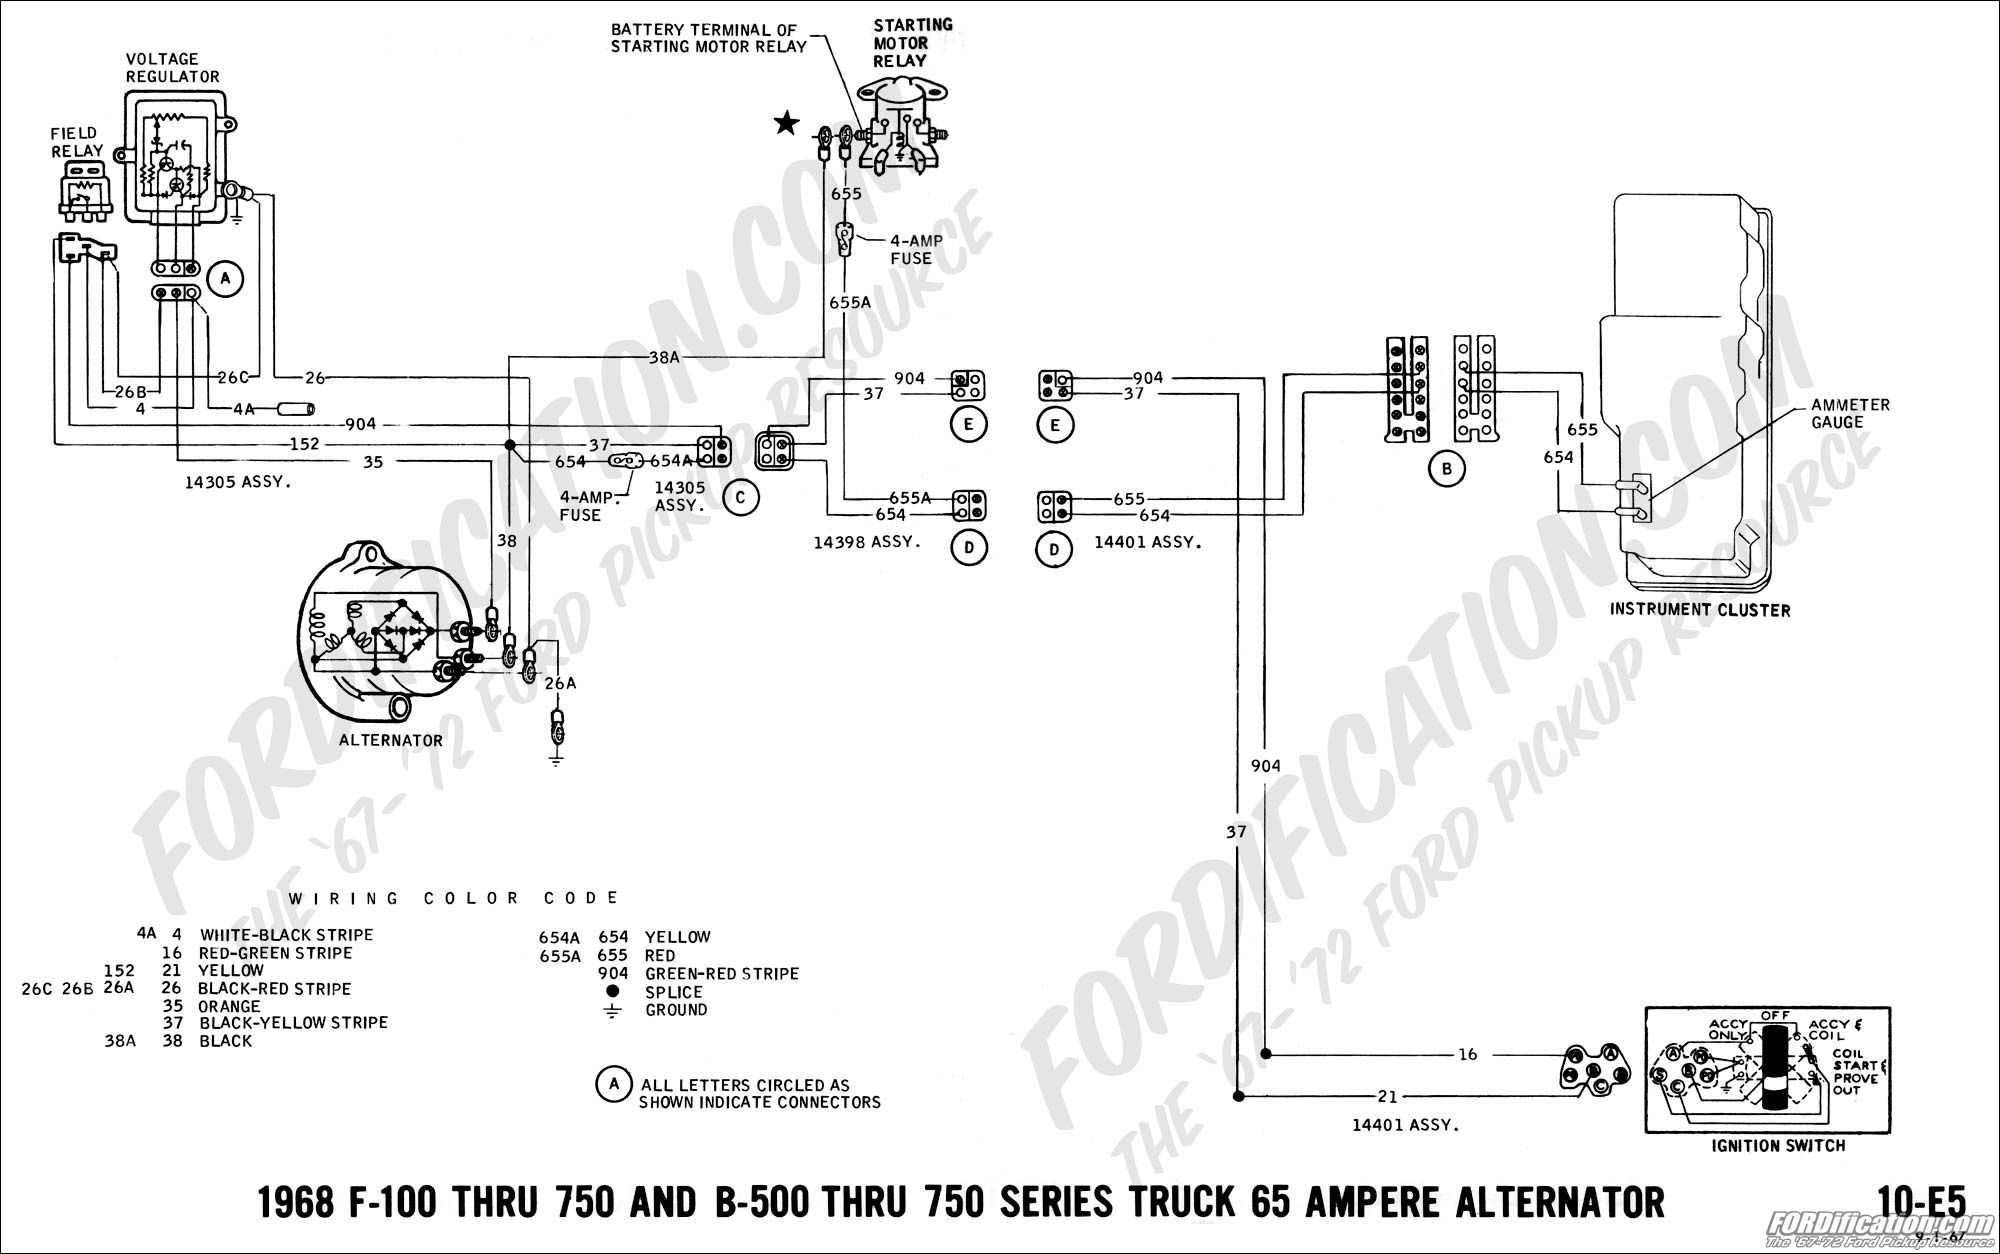 1970 ford f100 charging system wiring diagram ford